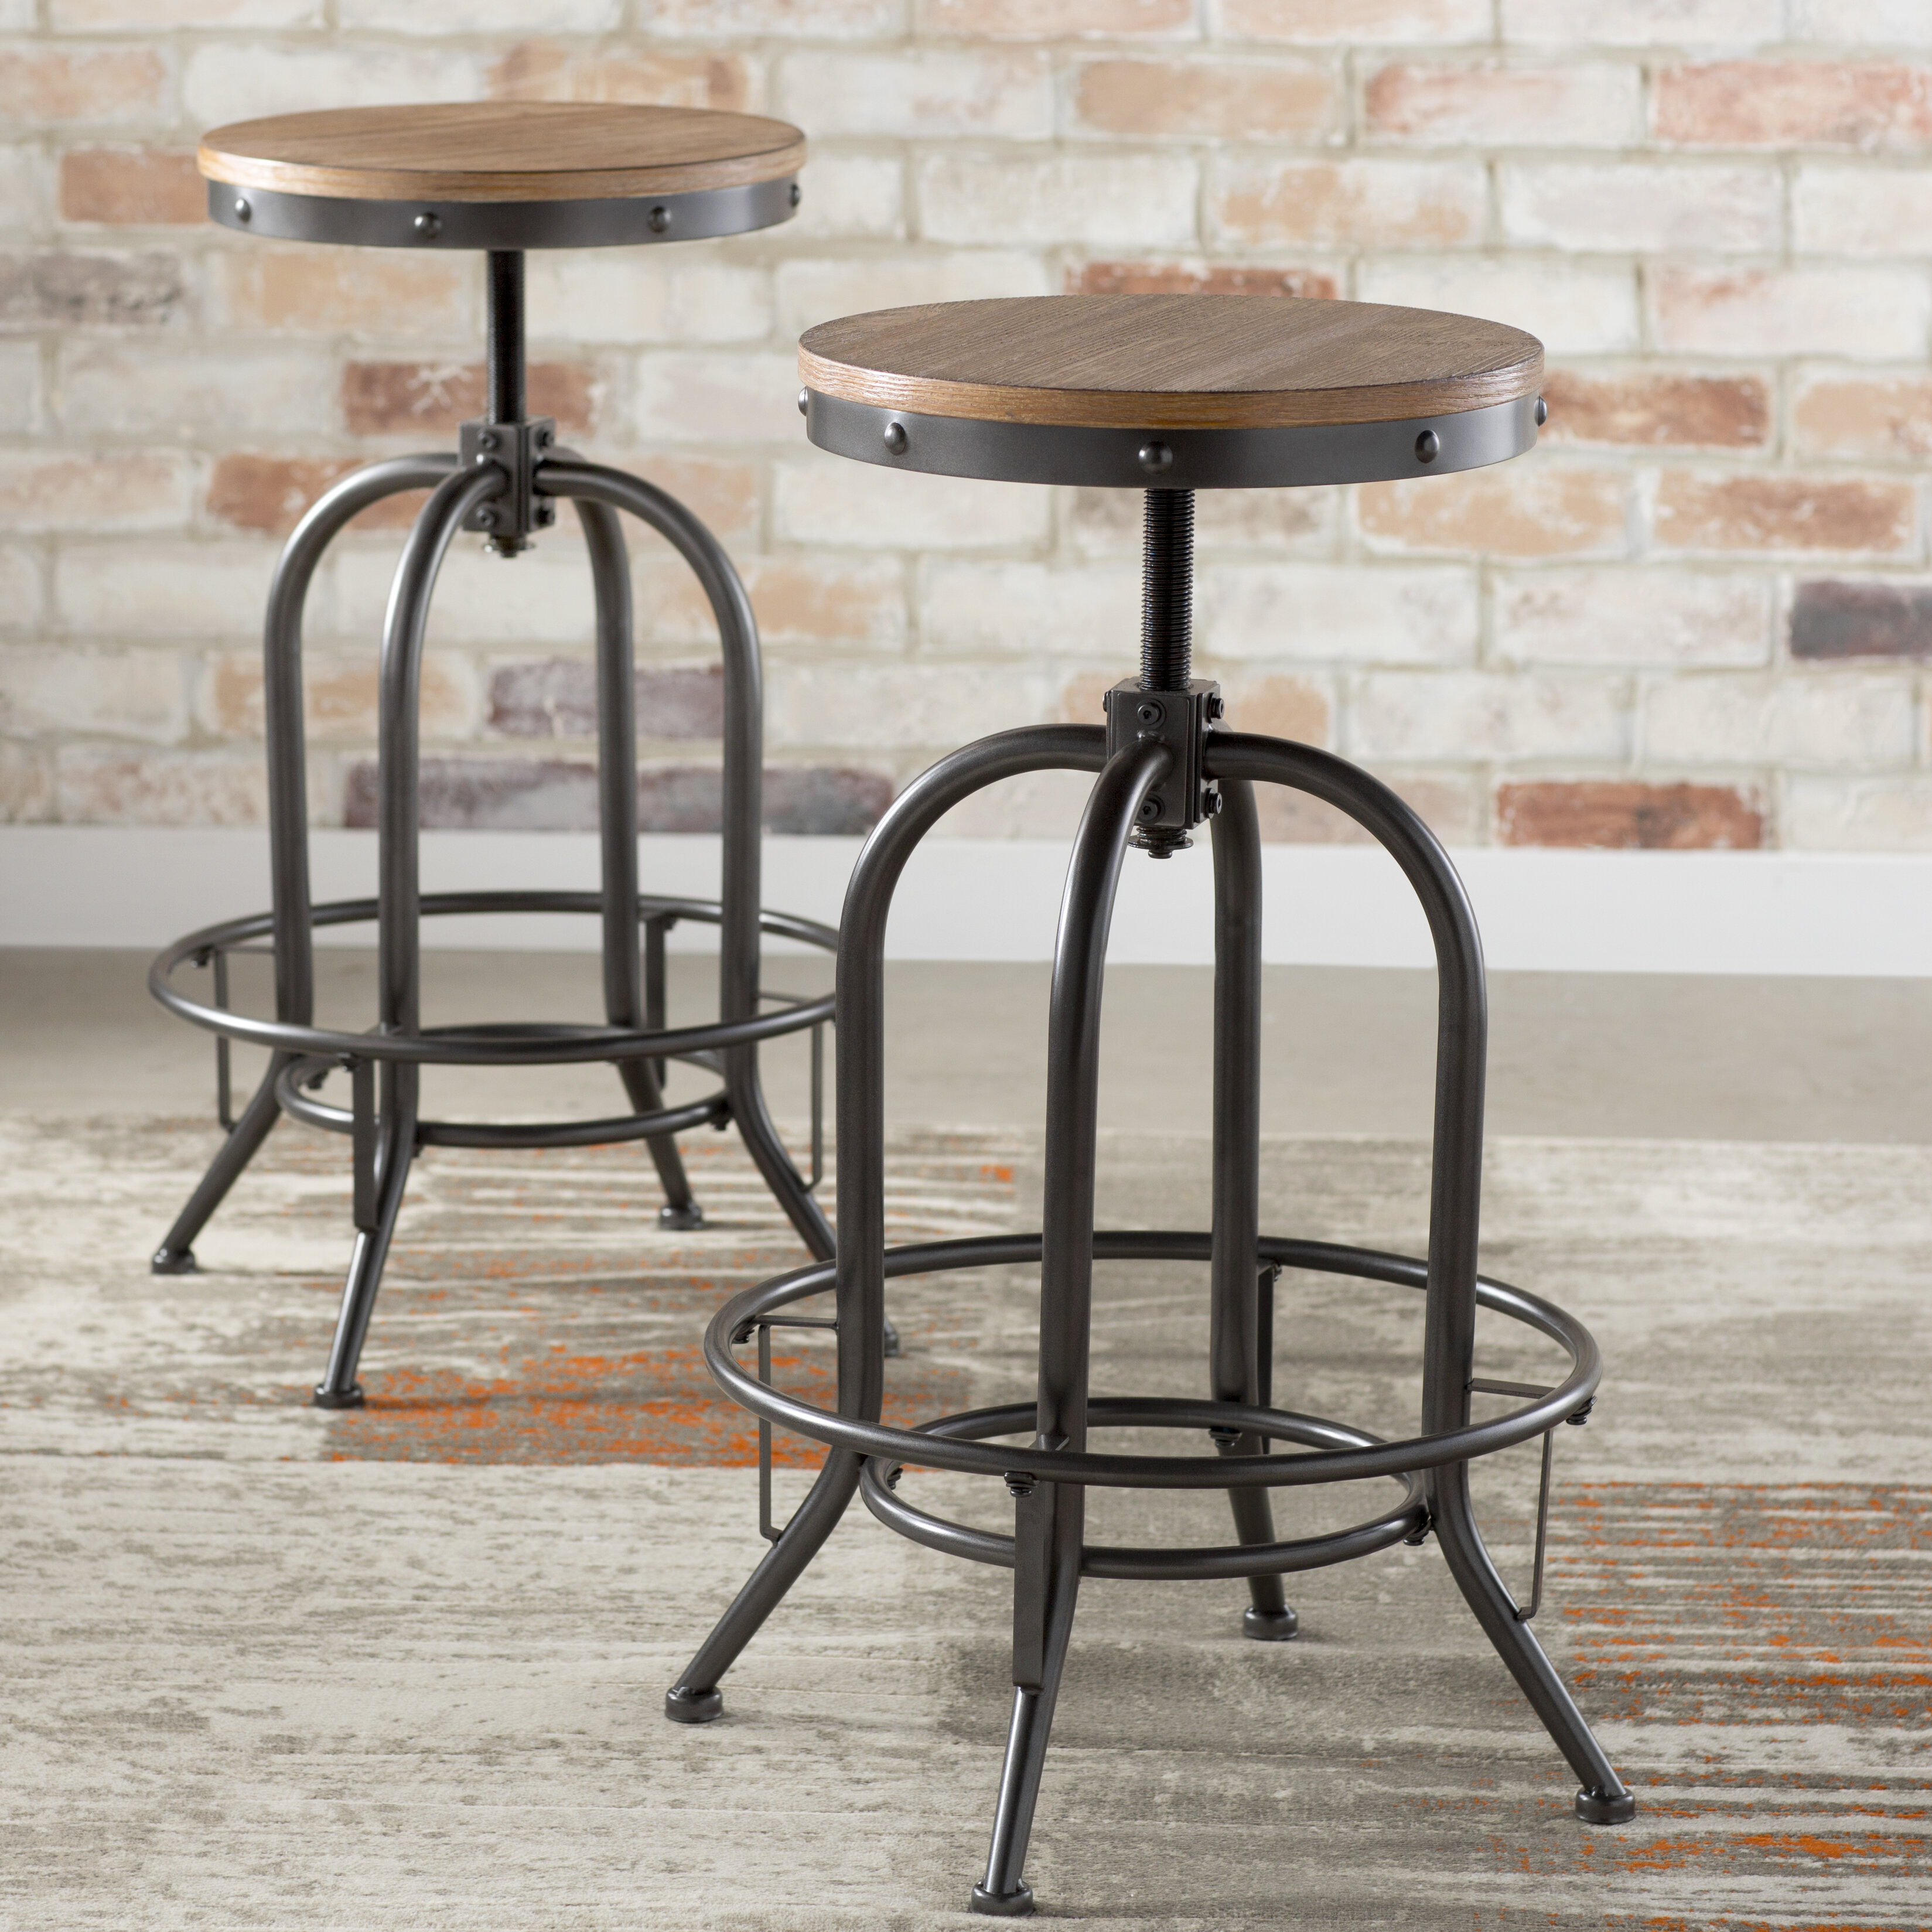 wayfair used stools reviews stool three furniture sale for goldenberg bar posts swivel pdx